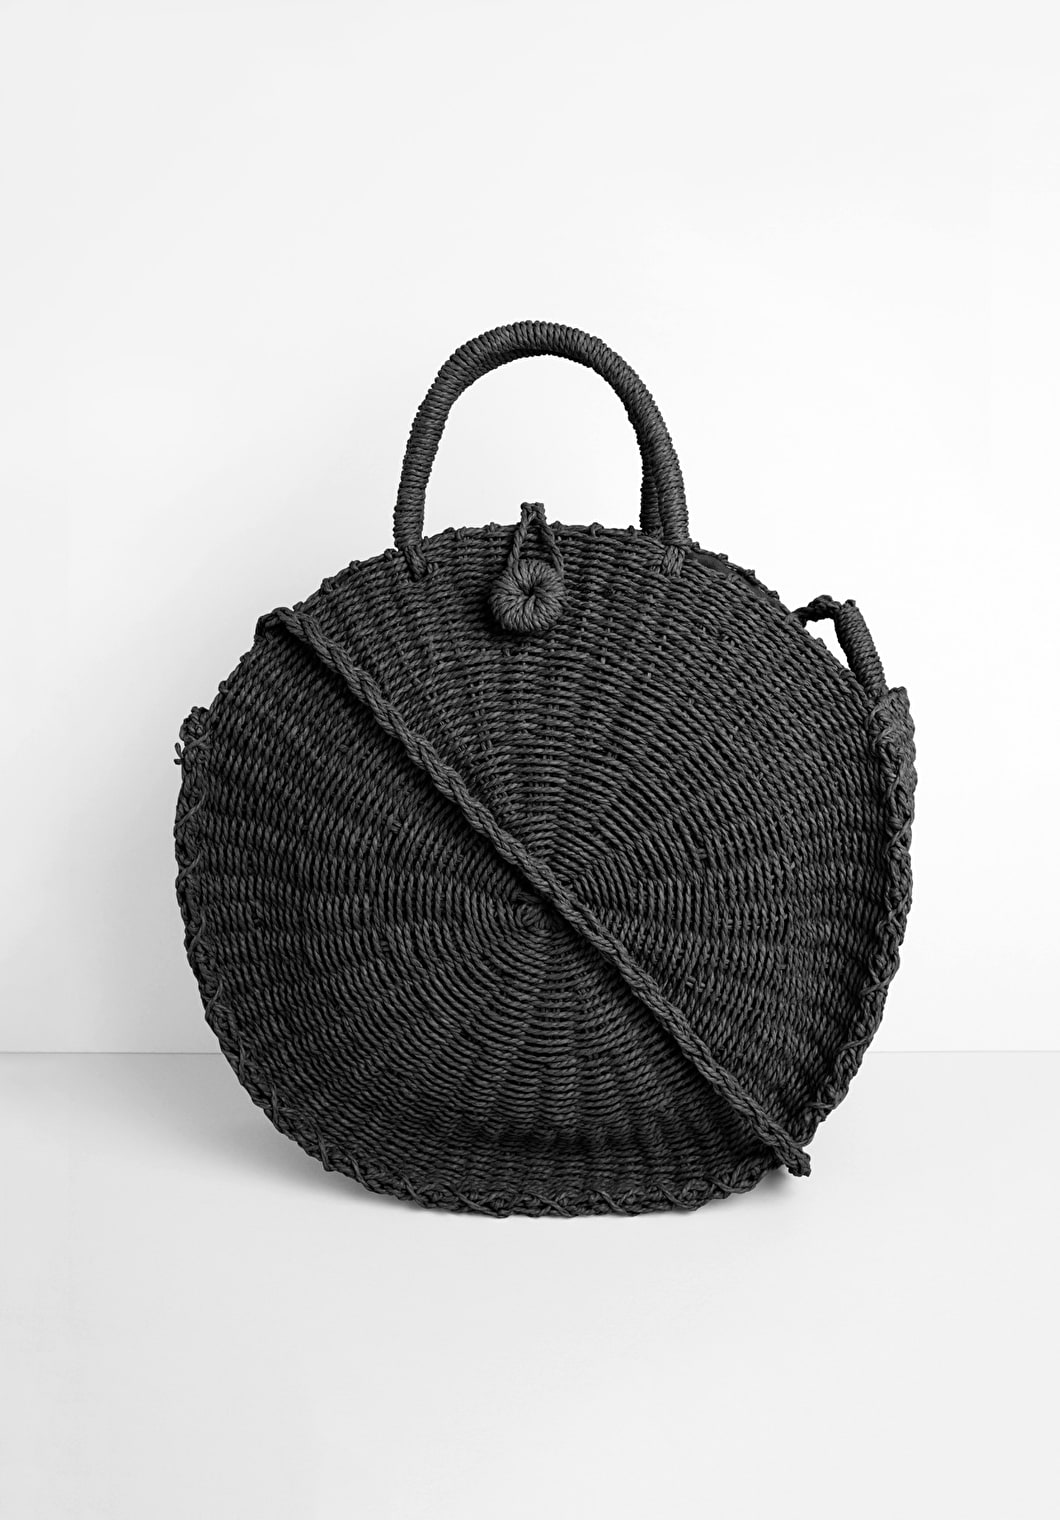 black round woven bag with a crossbody strap and handles with knot and loop fastening